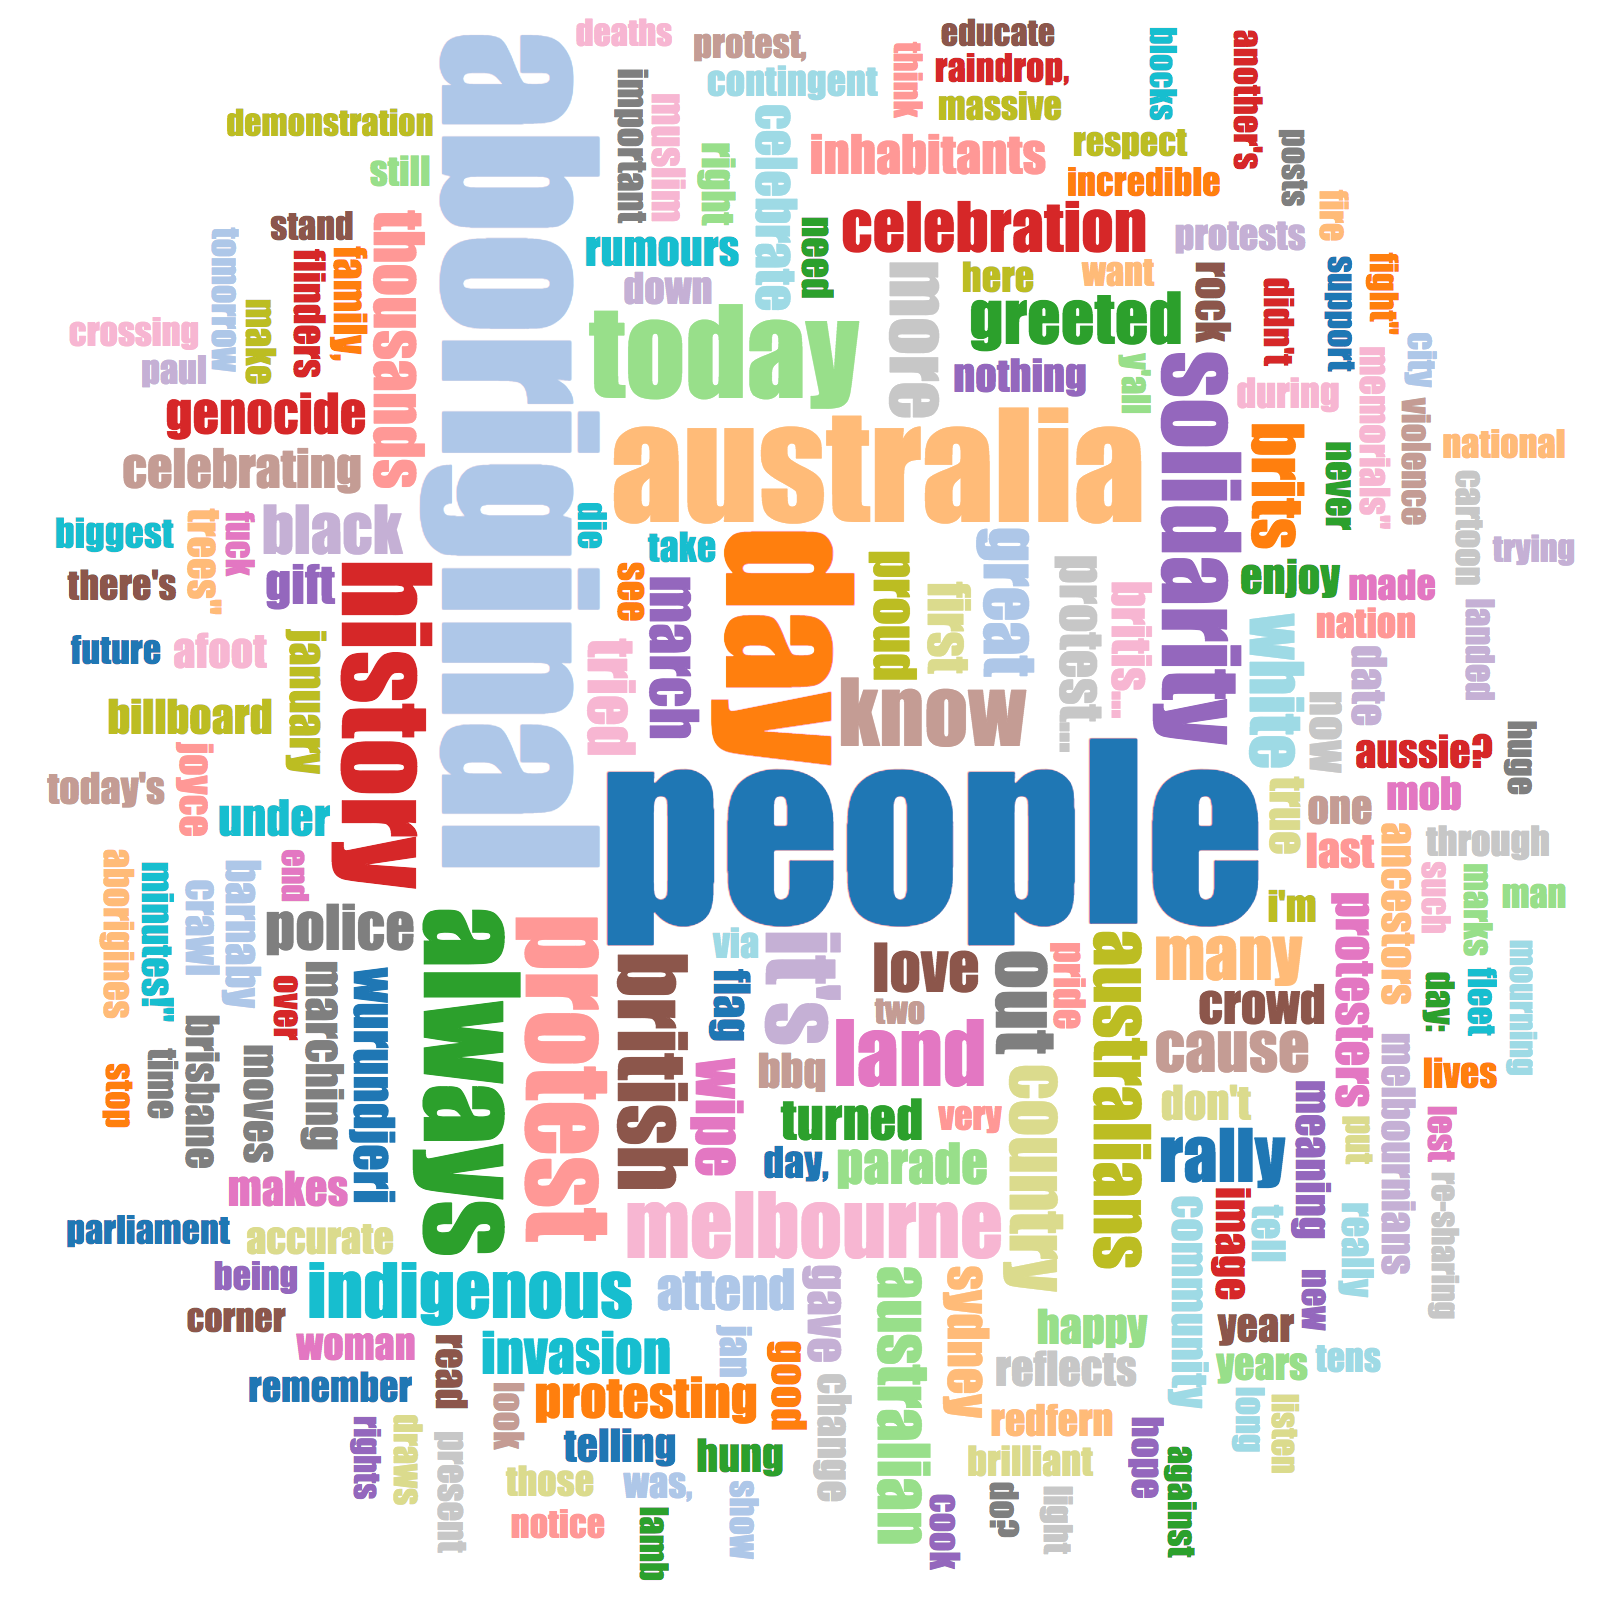 Word cloud of #invasionday tweets created by Twarc